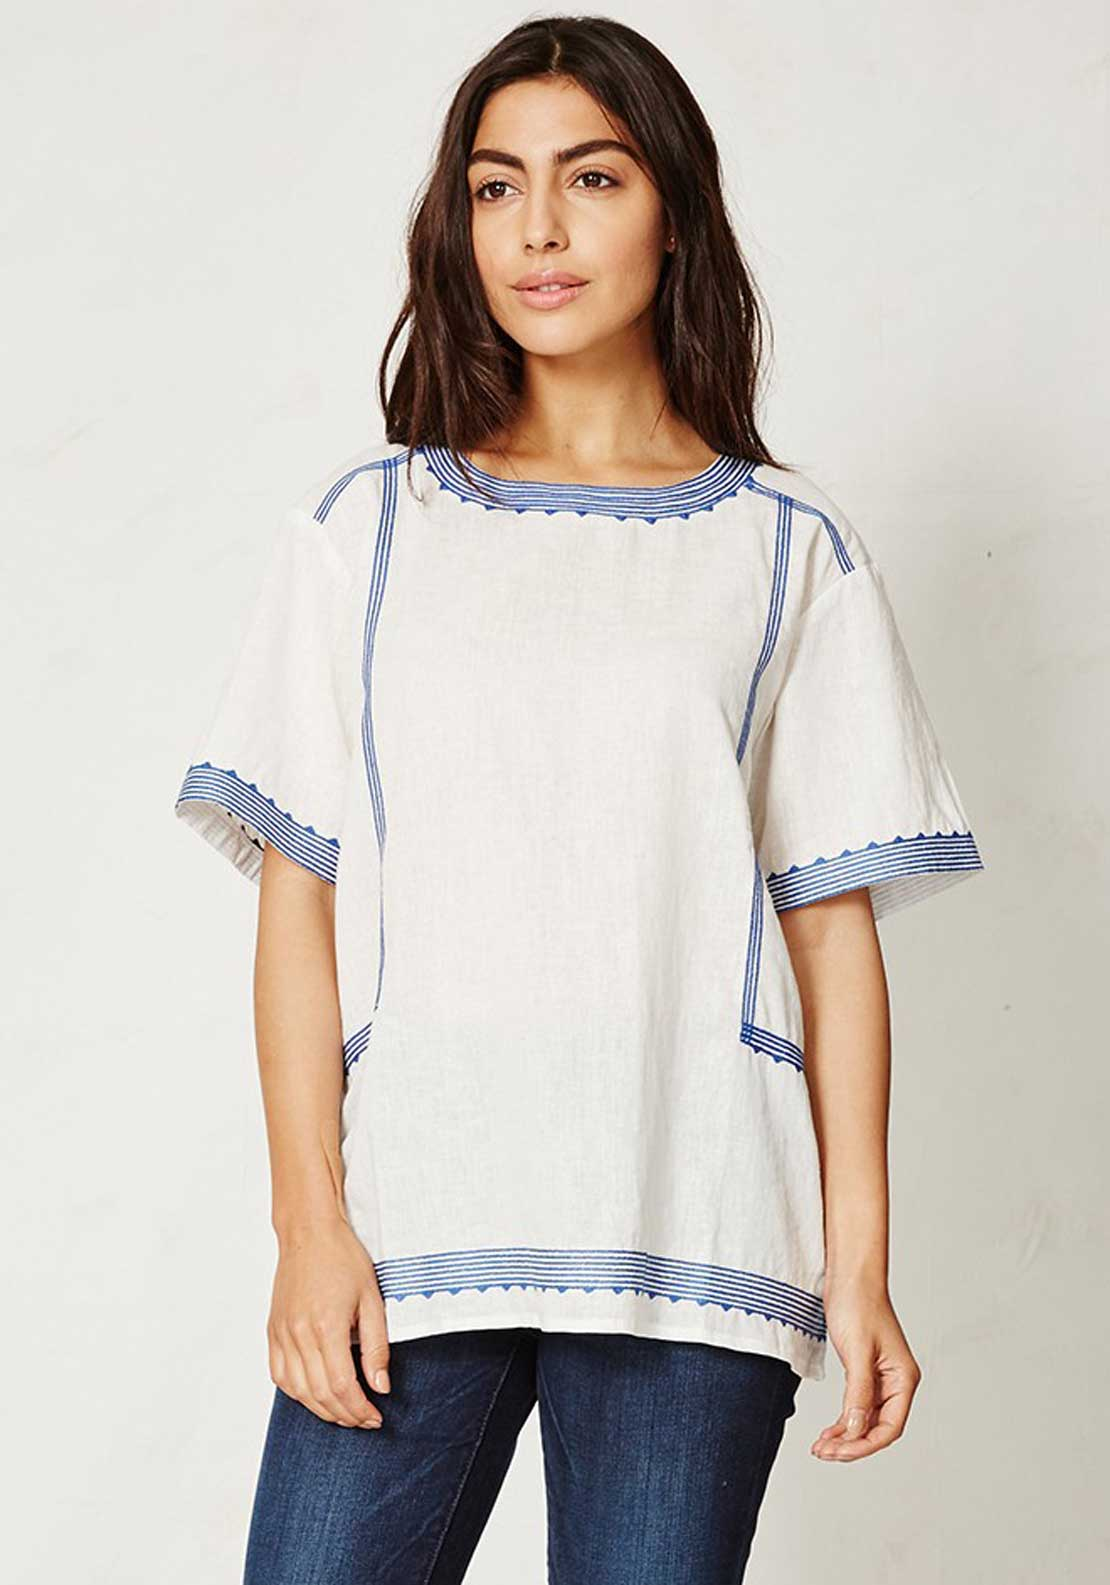 Braintree Karima Embroidered Short Sleeve Top, Ivory